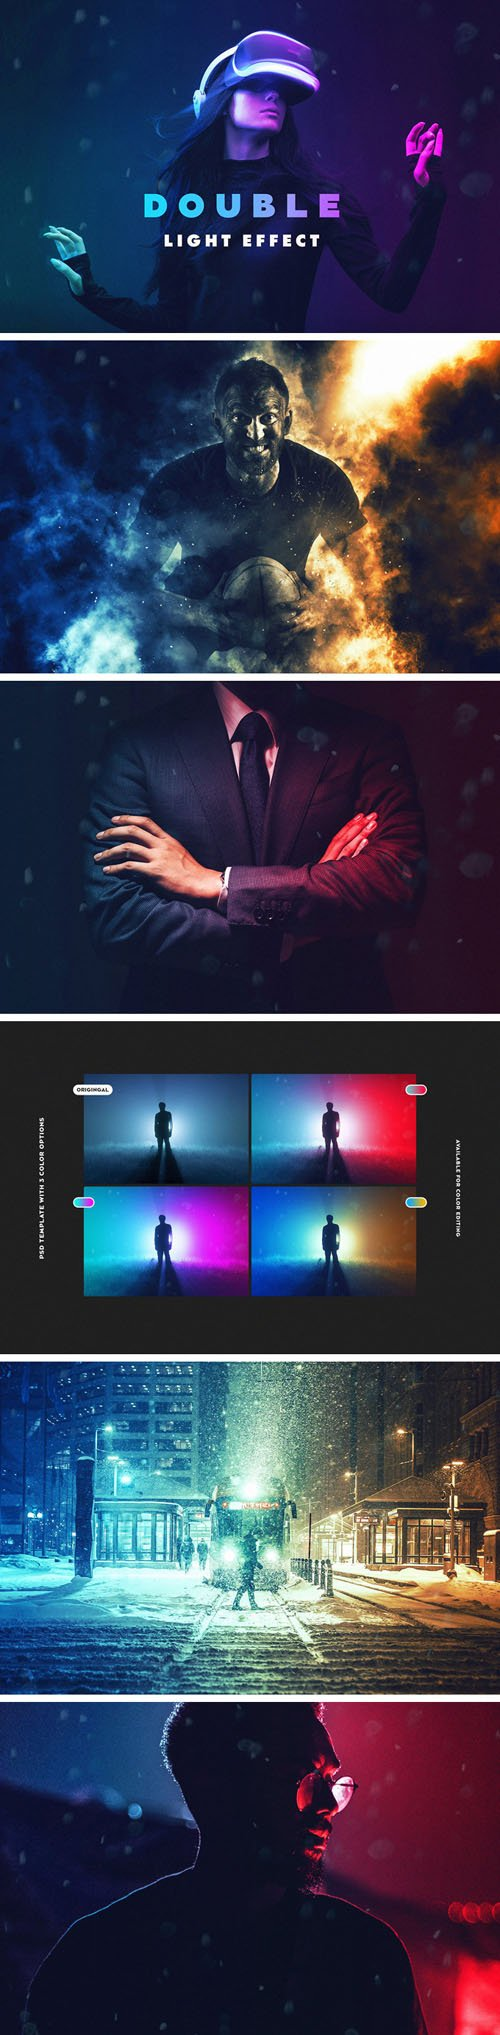 Double Light Photoshop Effect Pack